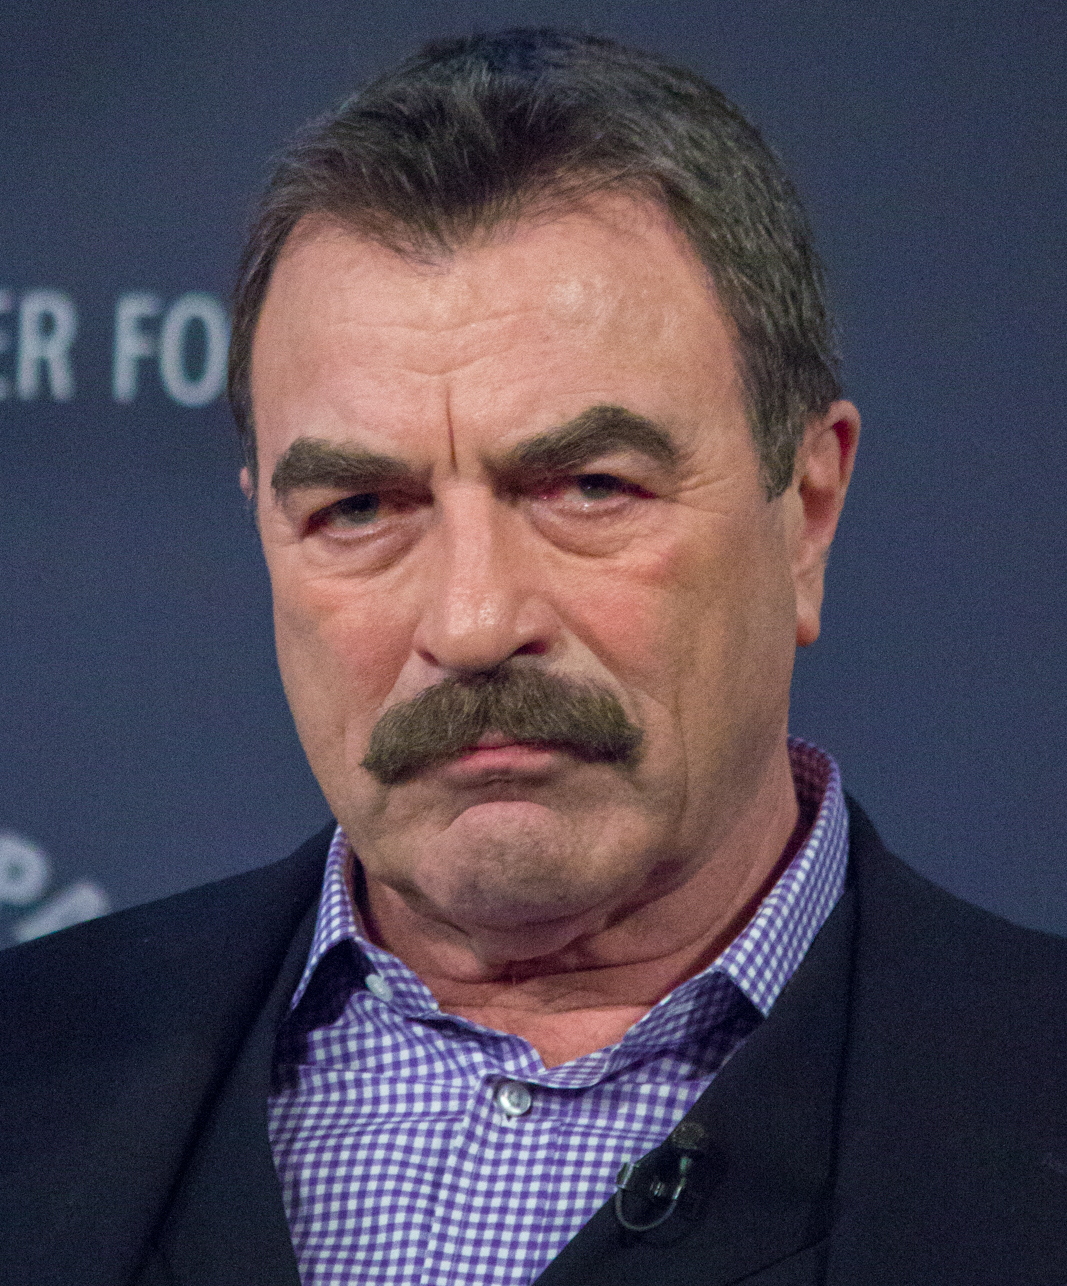 Tom Selleck at PaleyFest 2014 25 Celebrities You Didn't Know Served In The Military